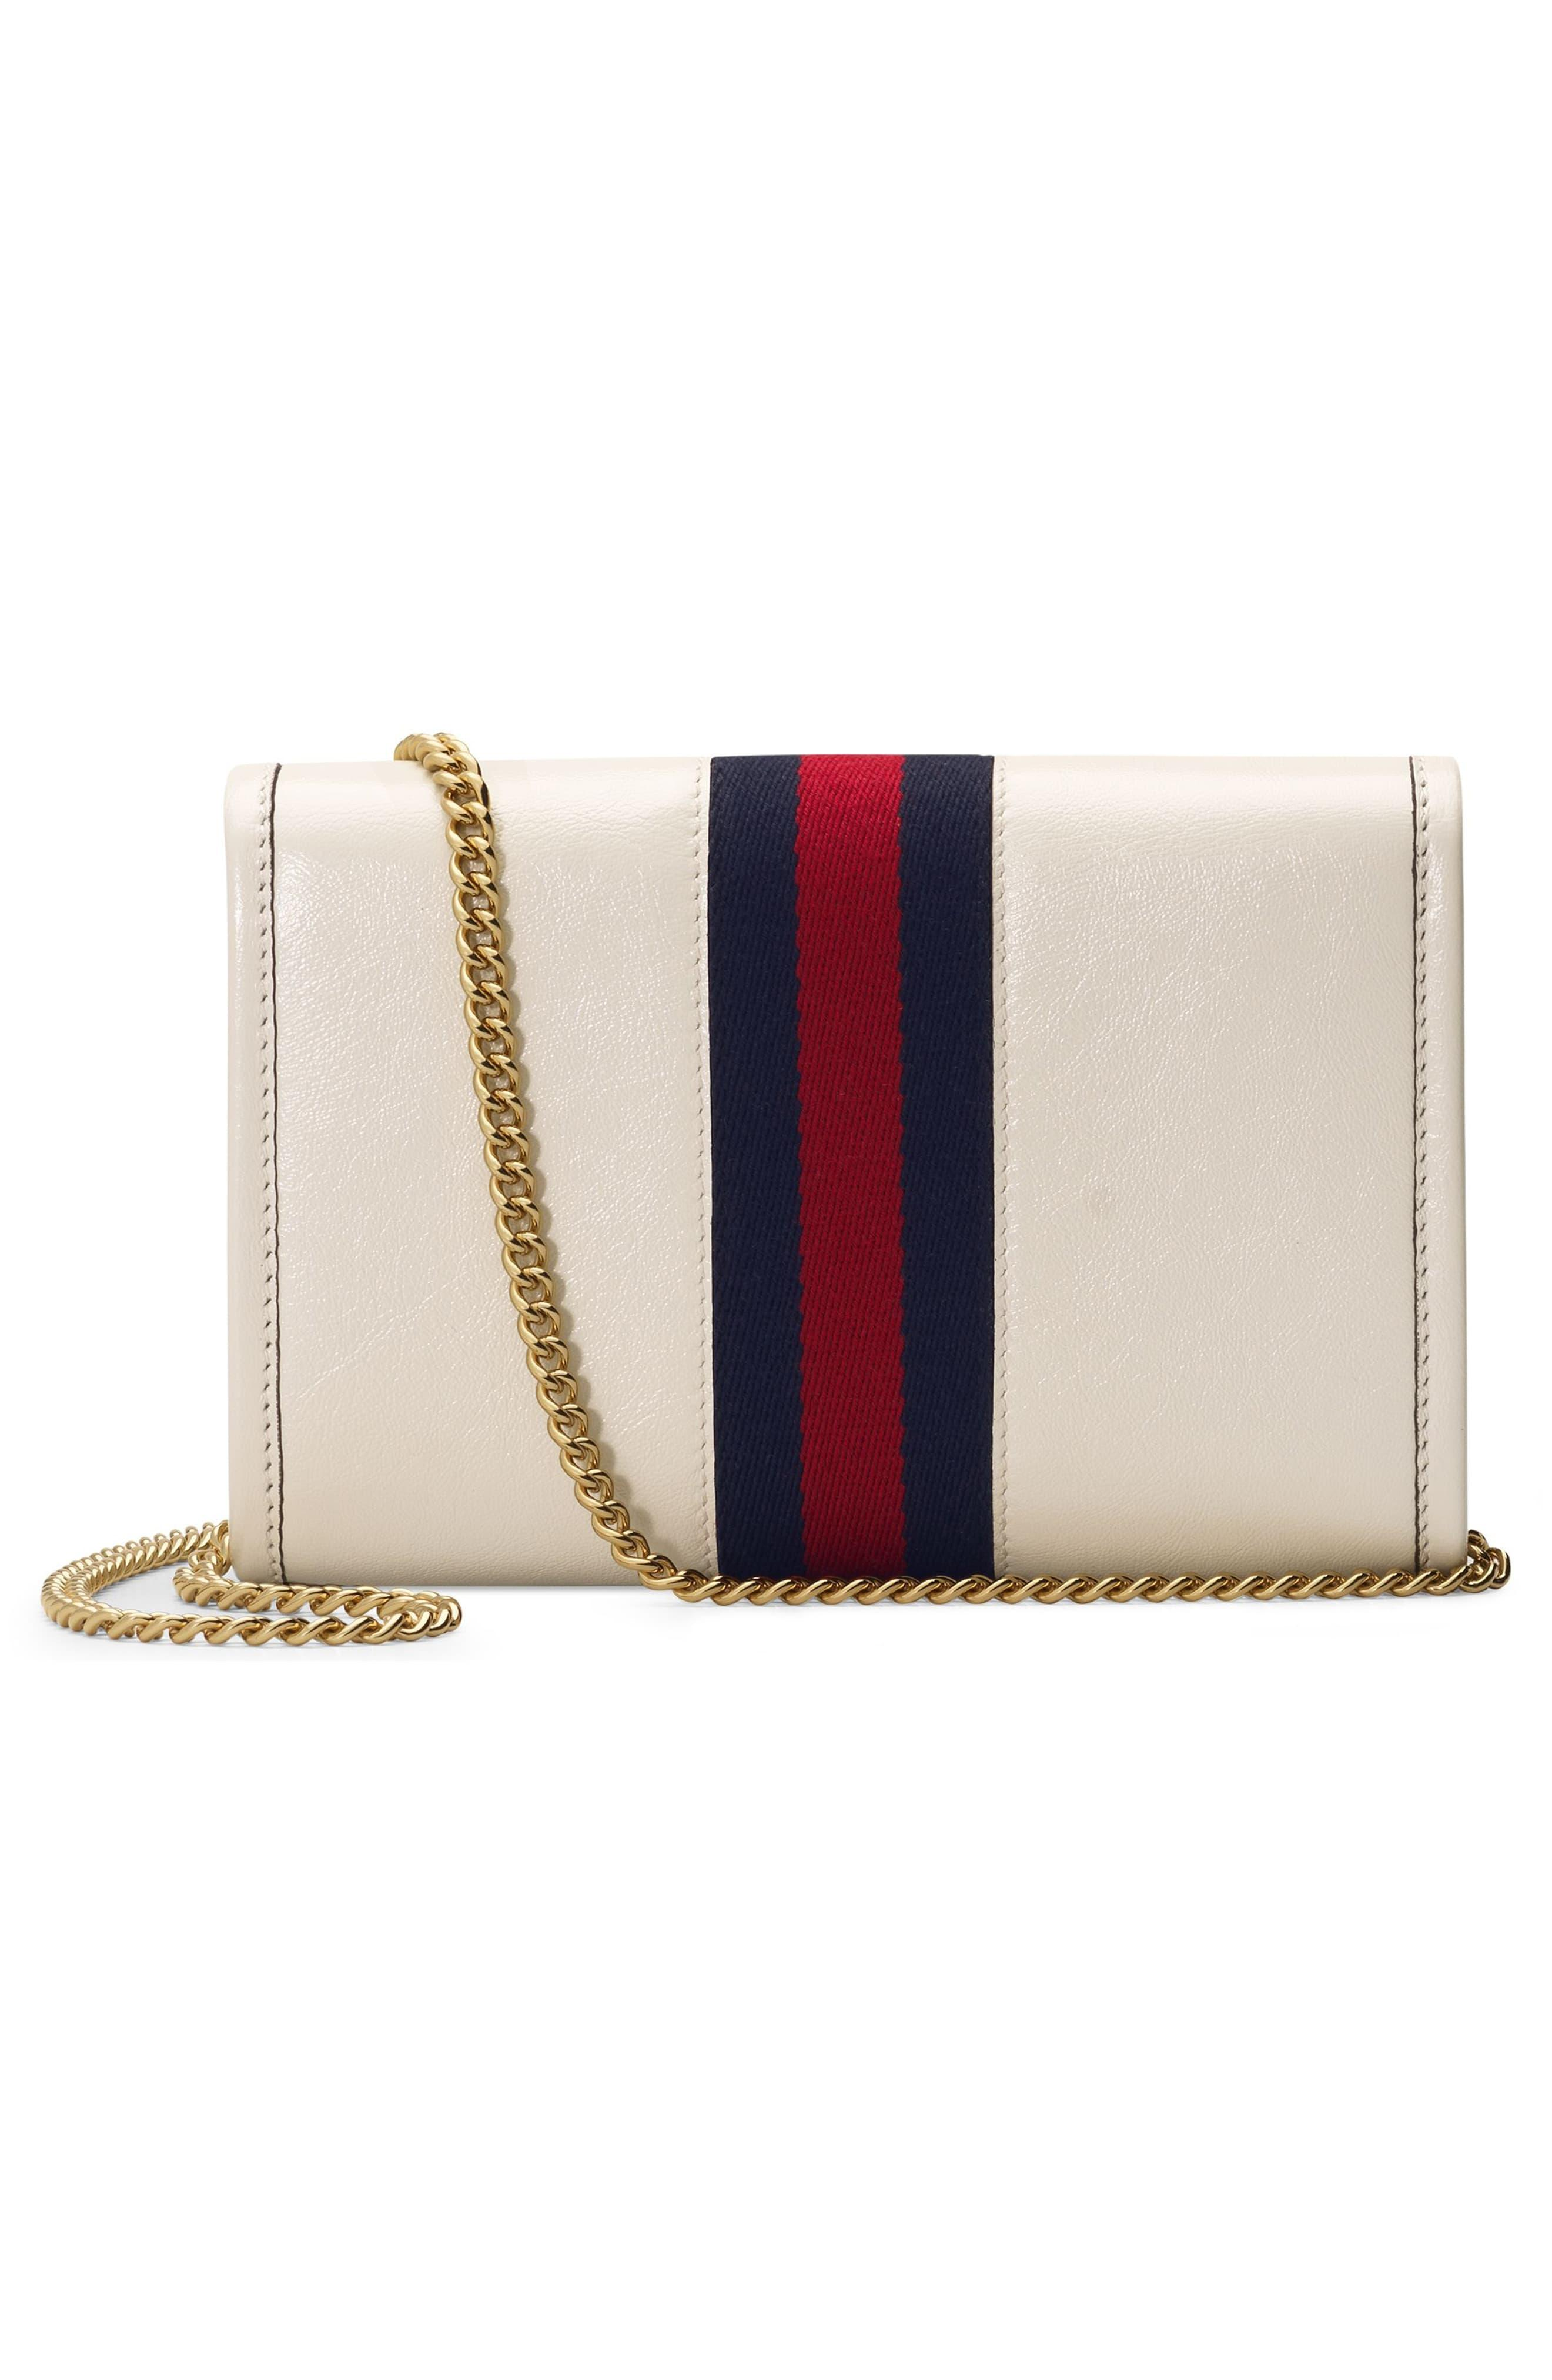 a82b4d79149789 ... Gucci - Multicolor Mini Rajah Leather Crossbody Bag - Lyst. Visit  Nordstrom. Tap to visit site